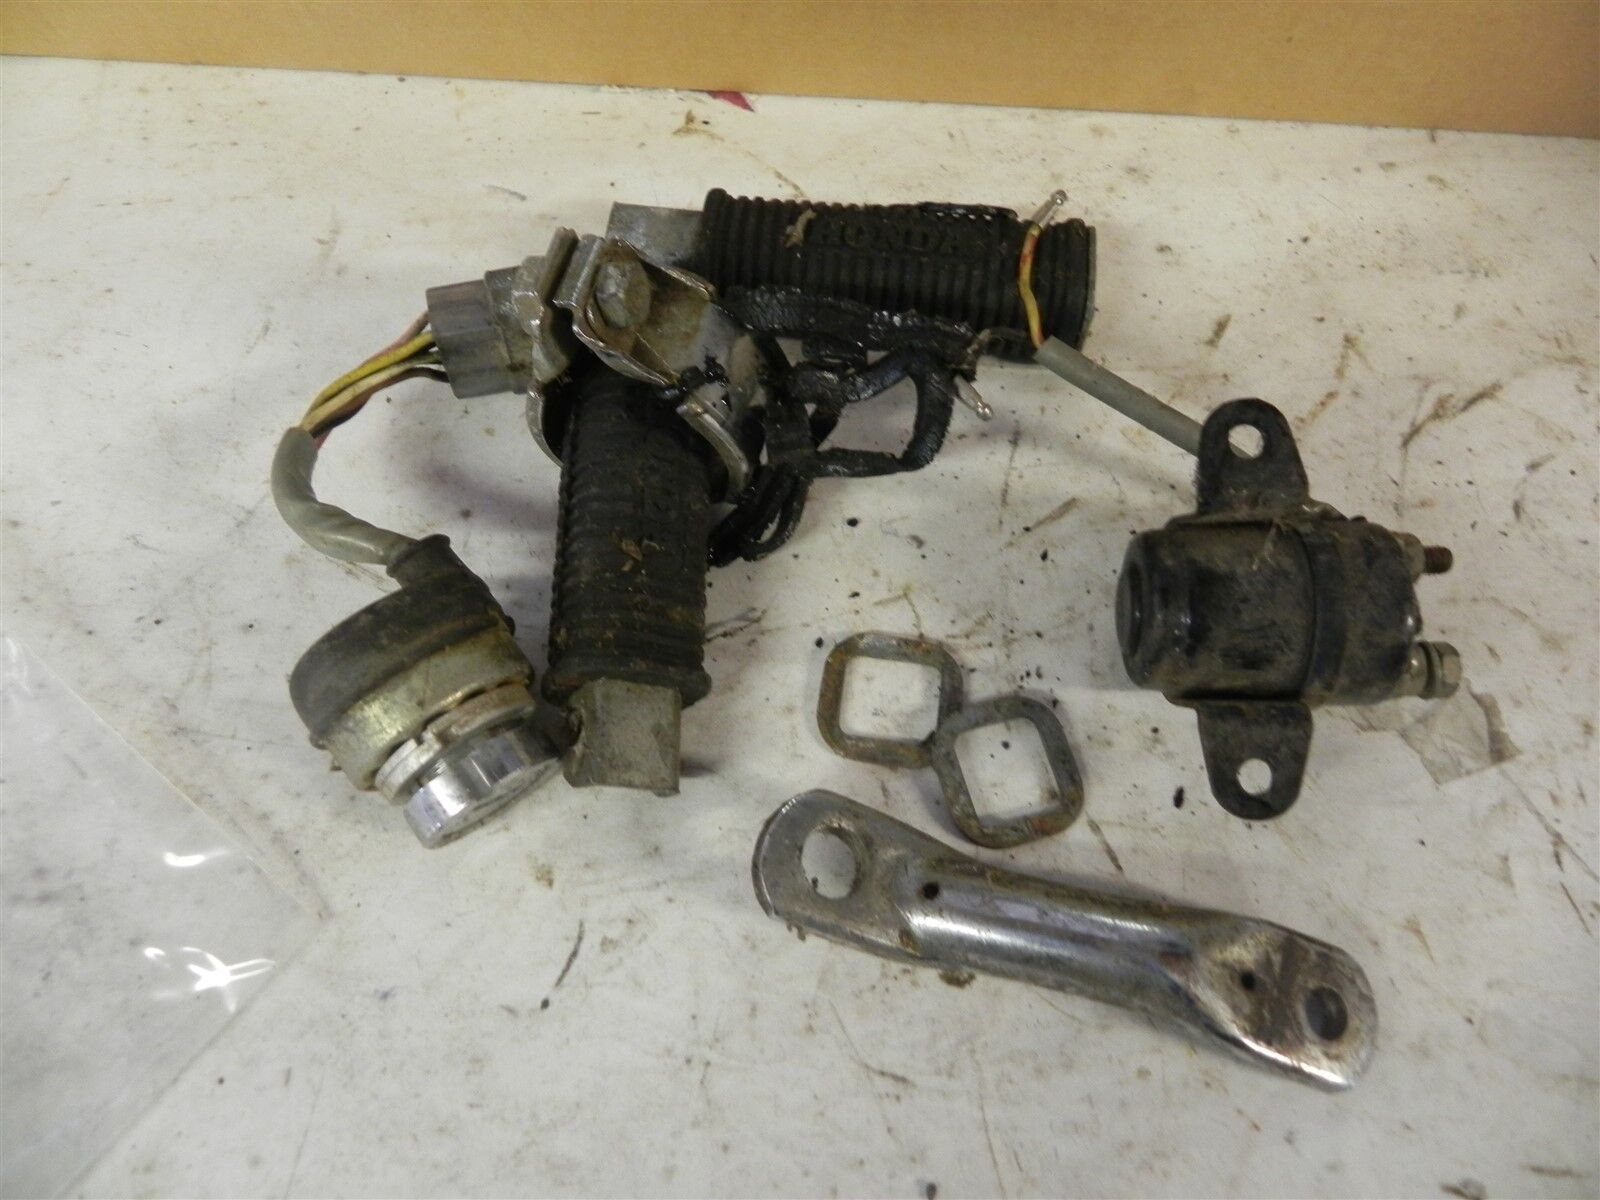 1970S VINTAGE HONDA MOTORCYCLE PARTS LOT ANTIQUE USED PEDAL PEGS SWITCHES  CHROME See Photos Below For Details.